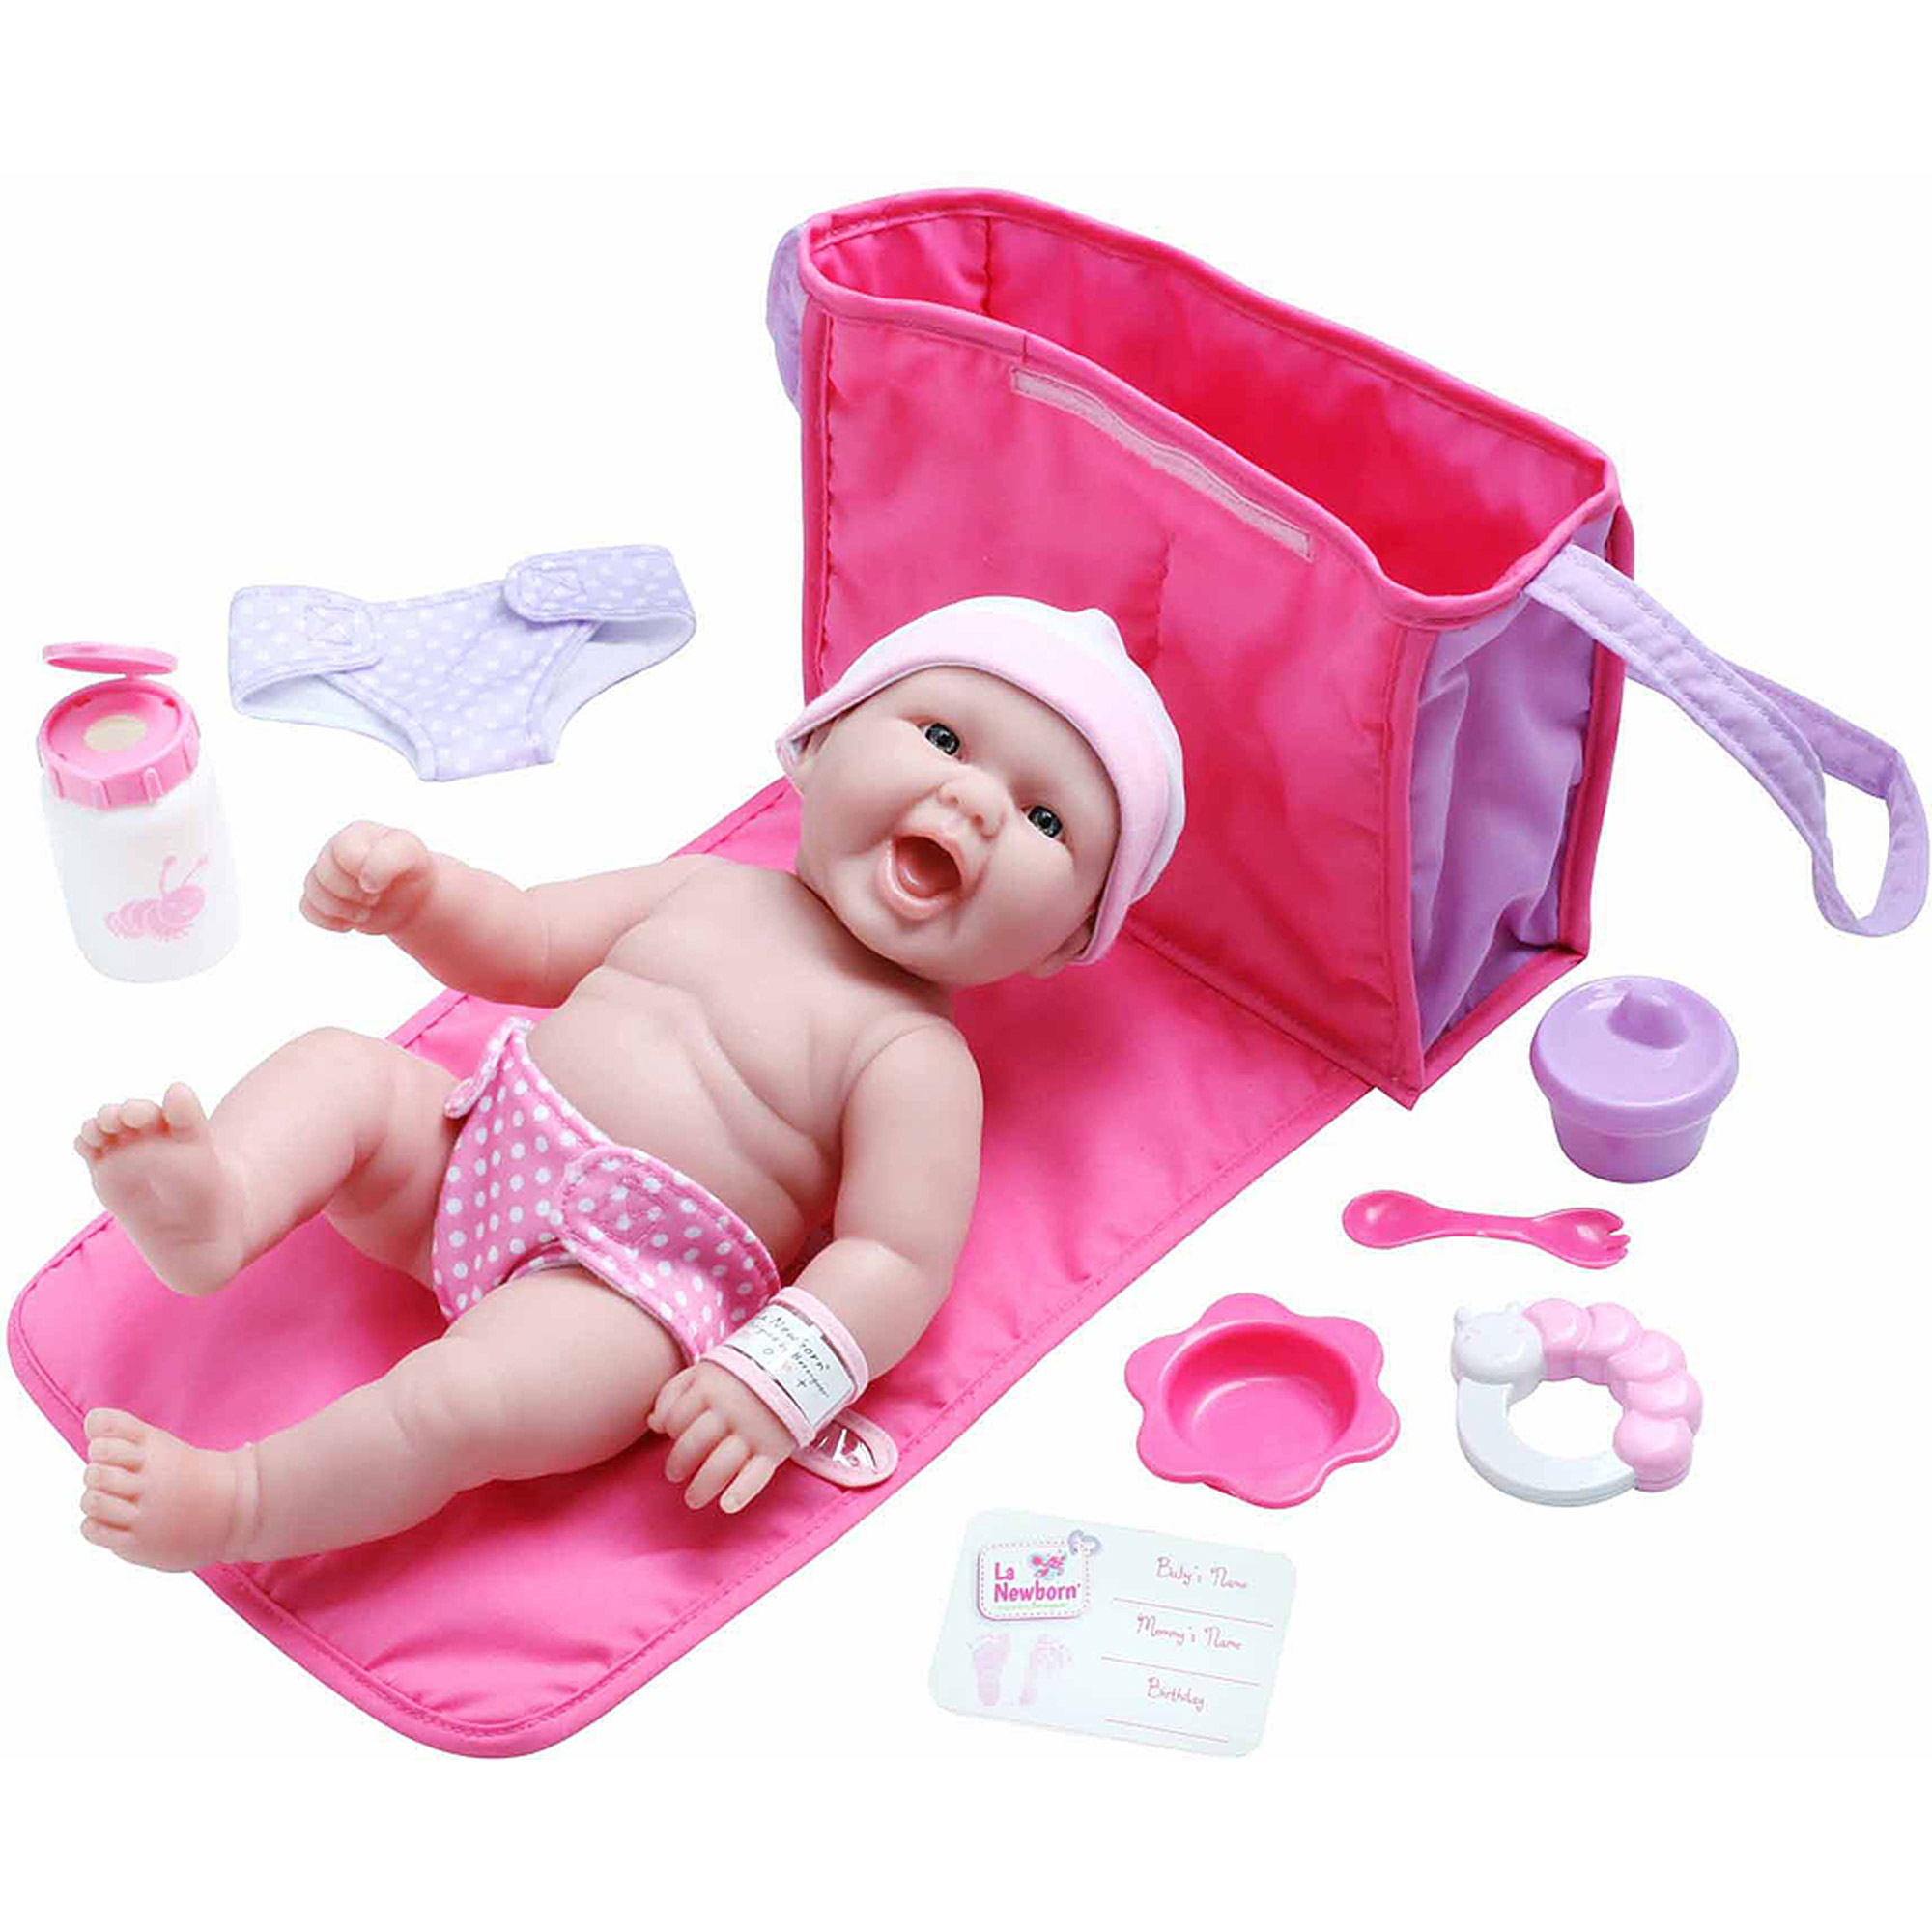 Doll Diapers - Walmart.com